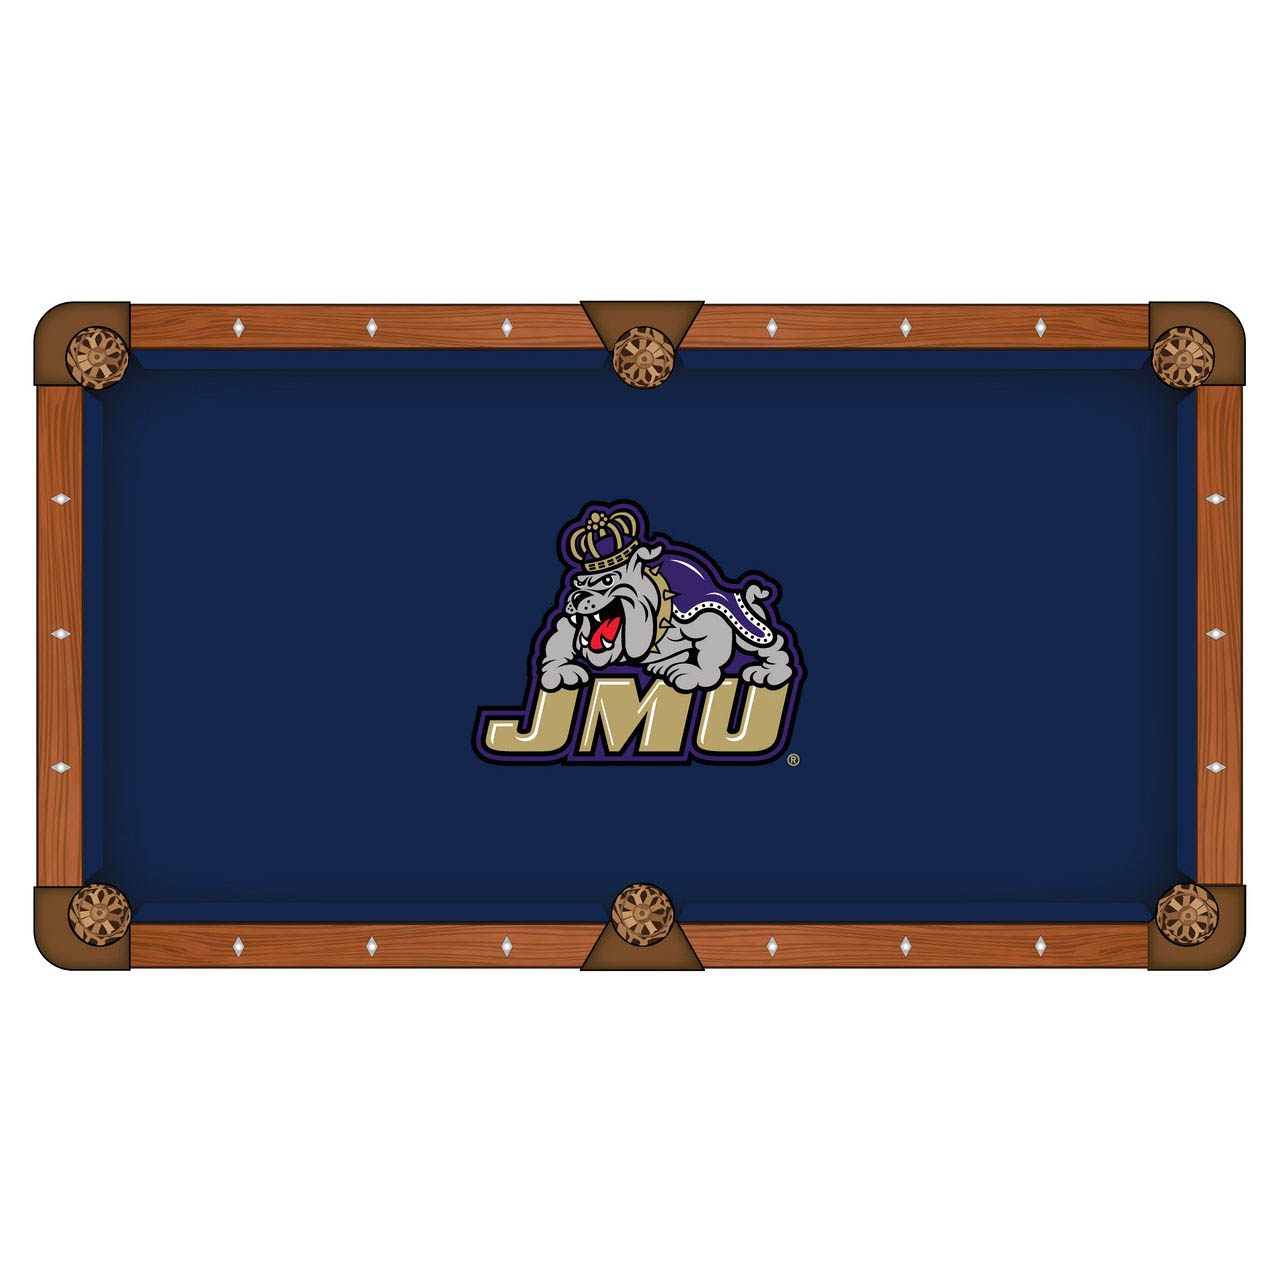 Search James Madison University Pool Table Cloth Product Photo